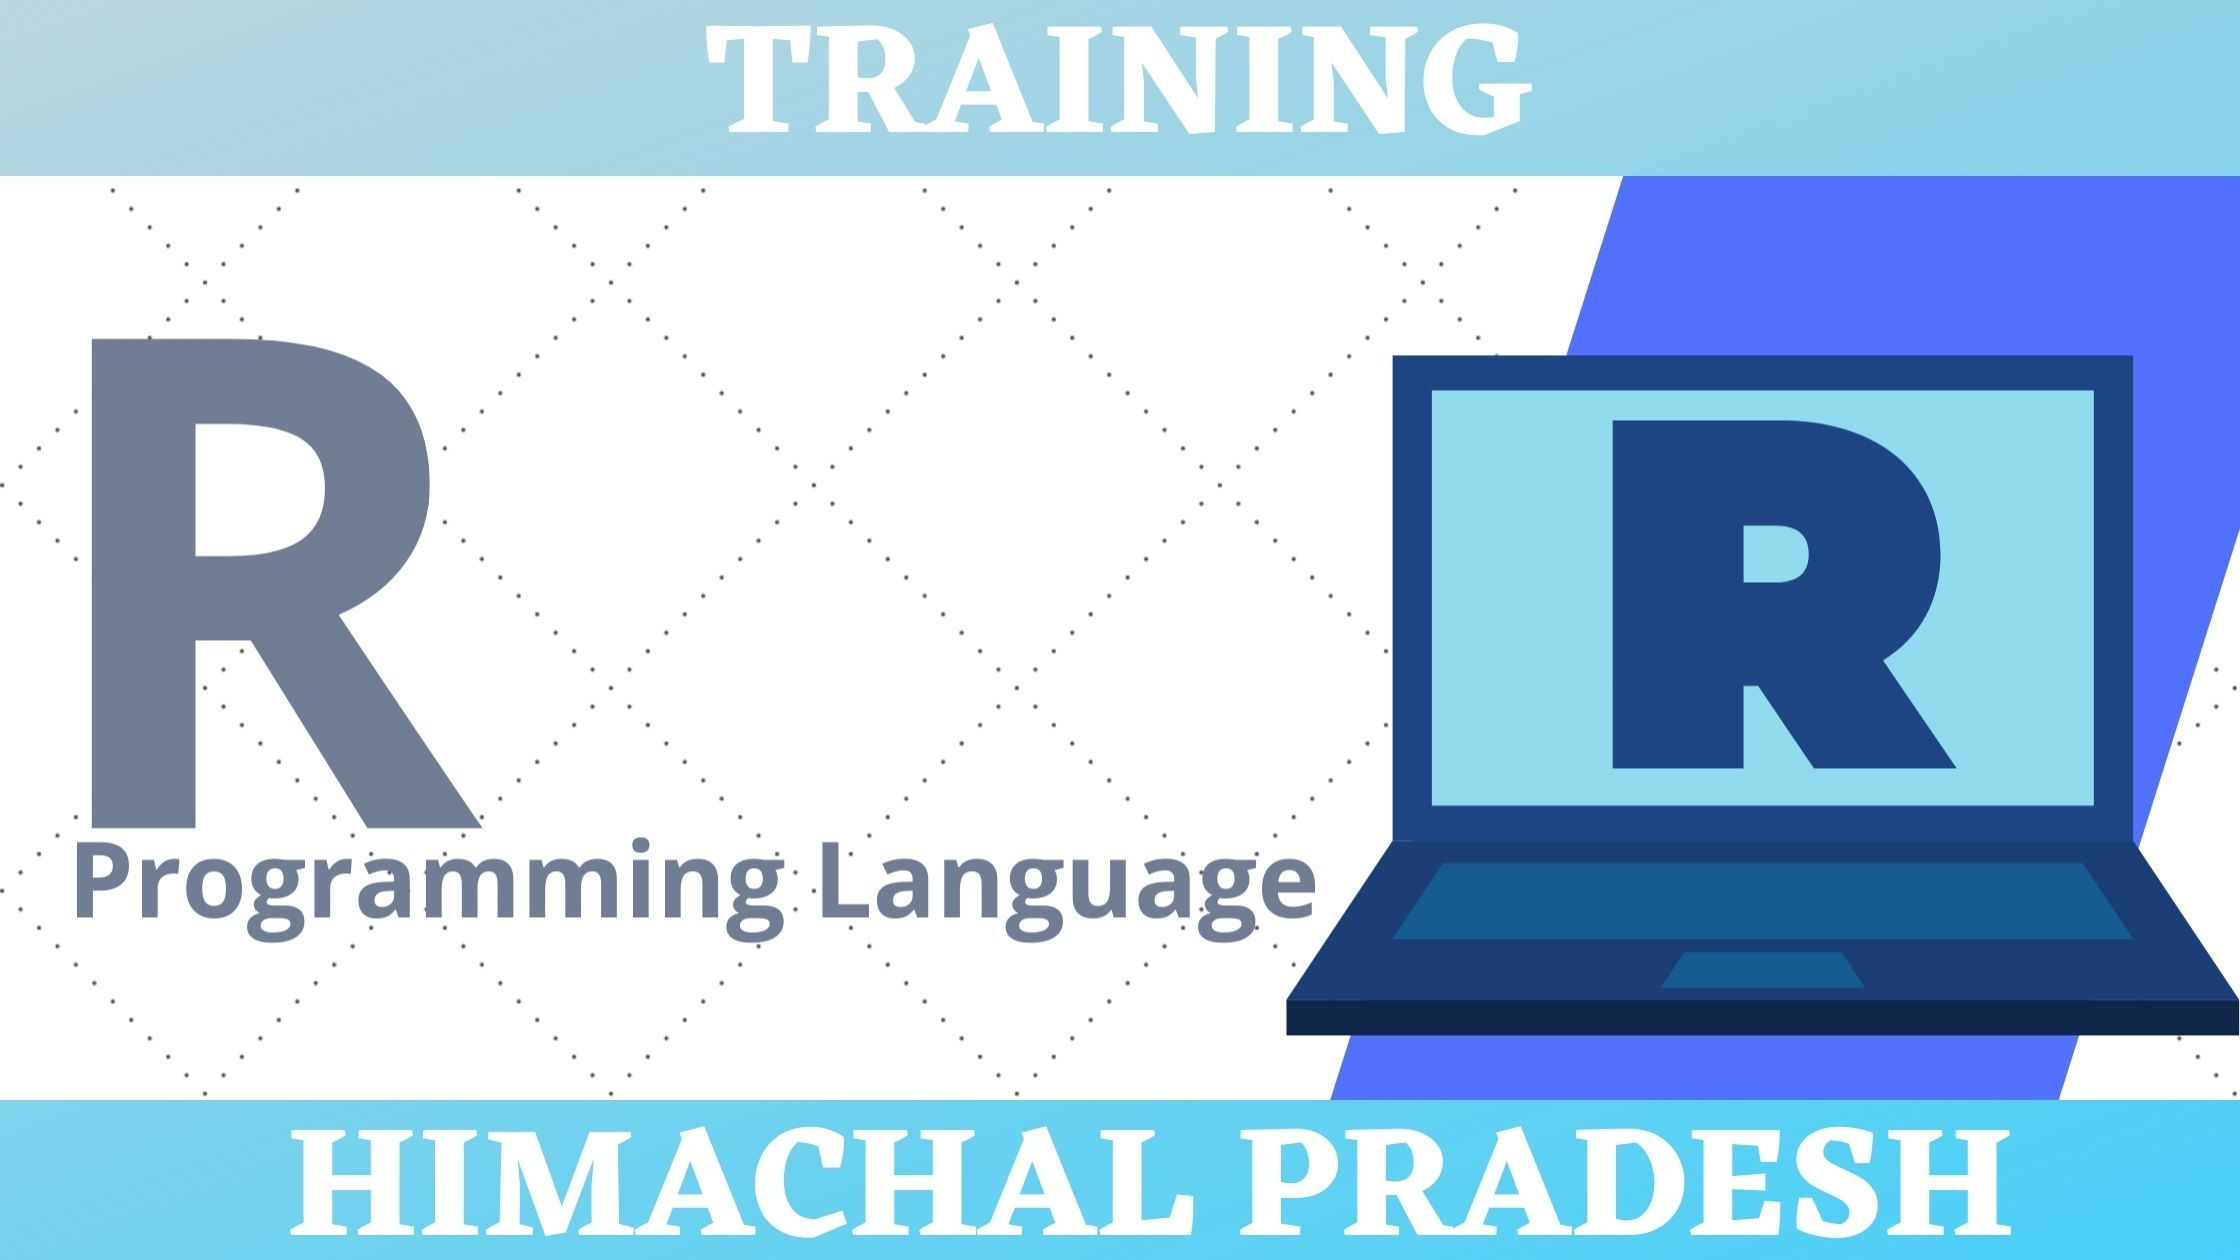 r_programming_in_himachal_pradesh-background.jpeg